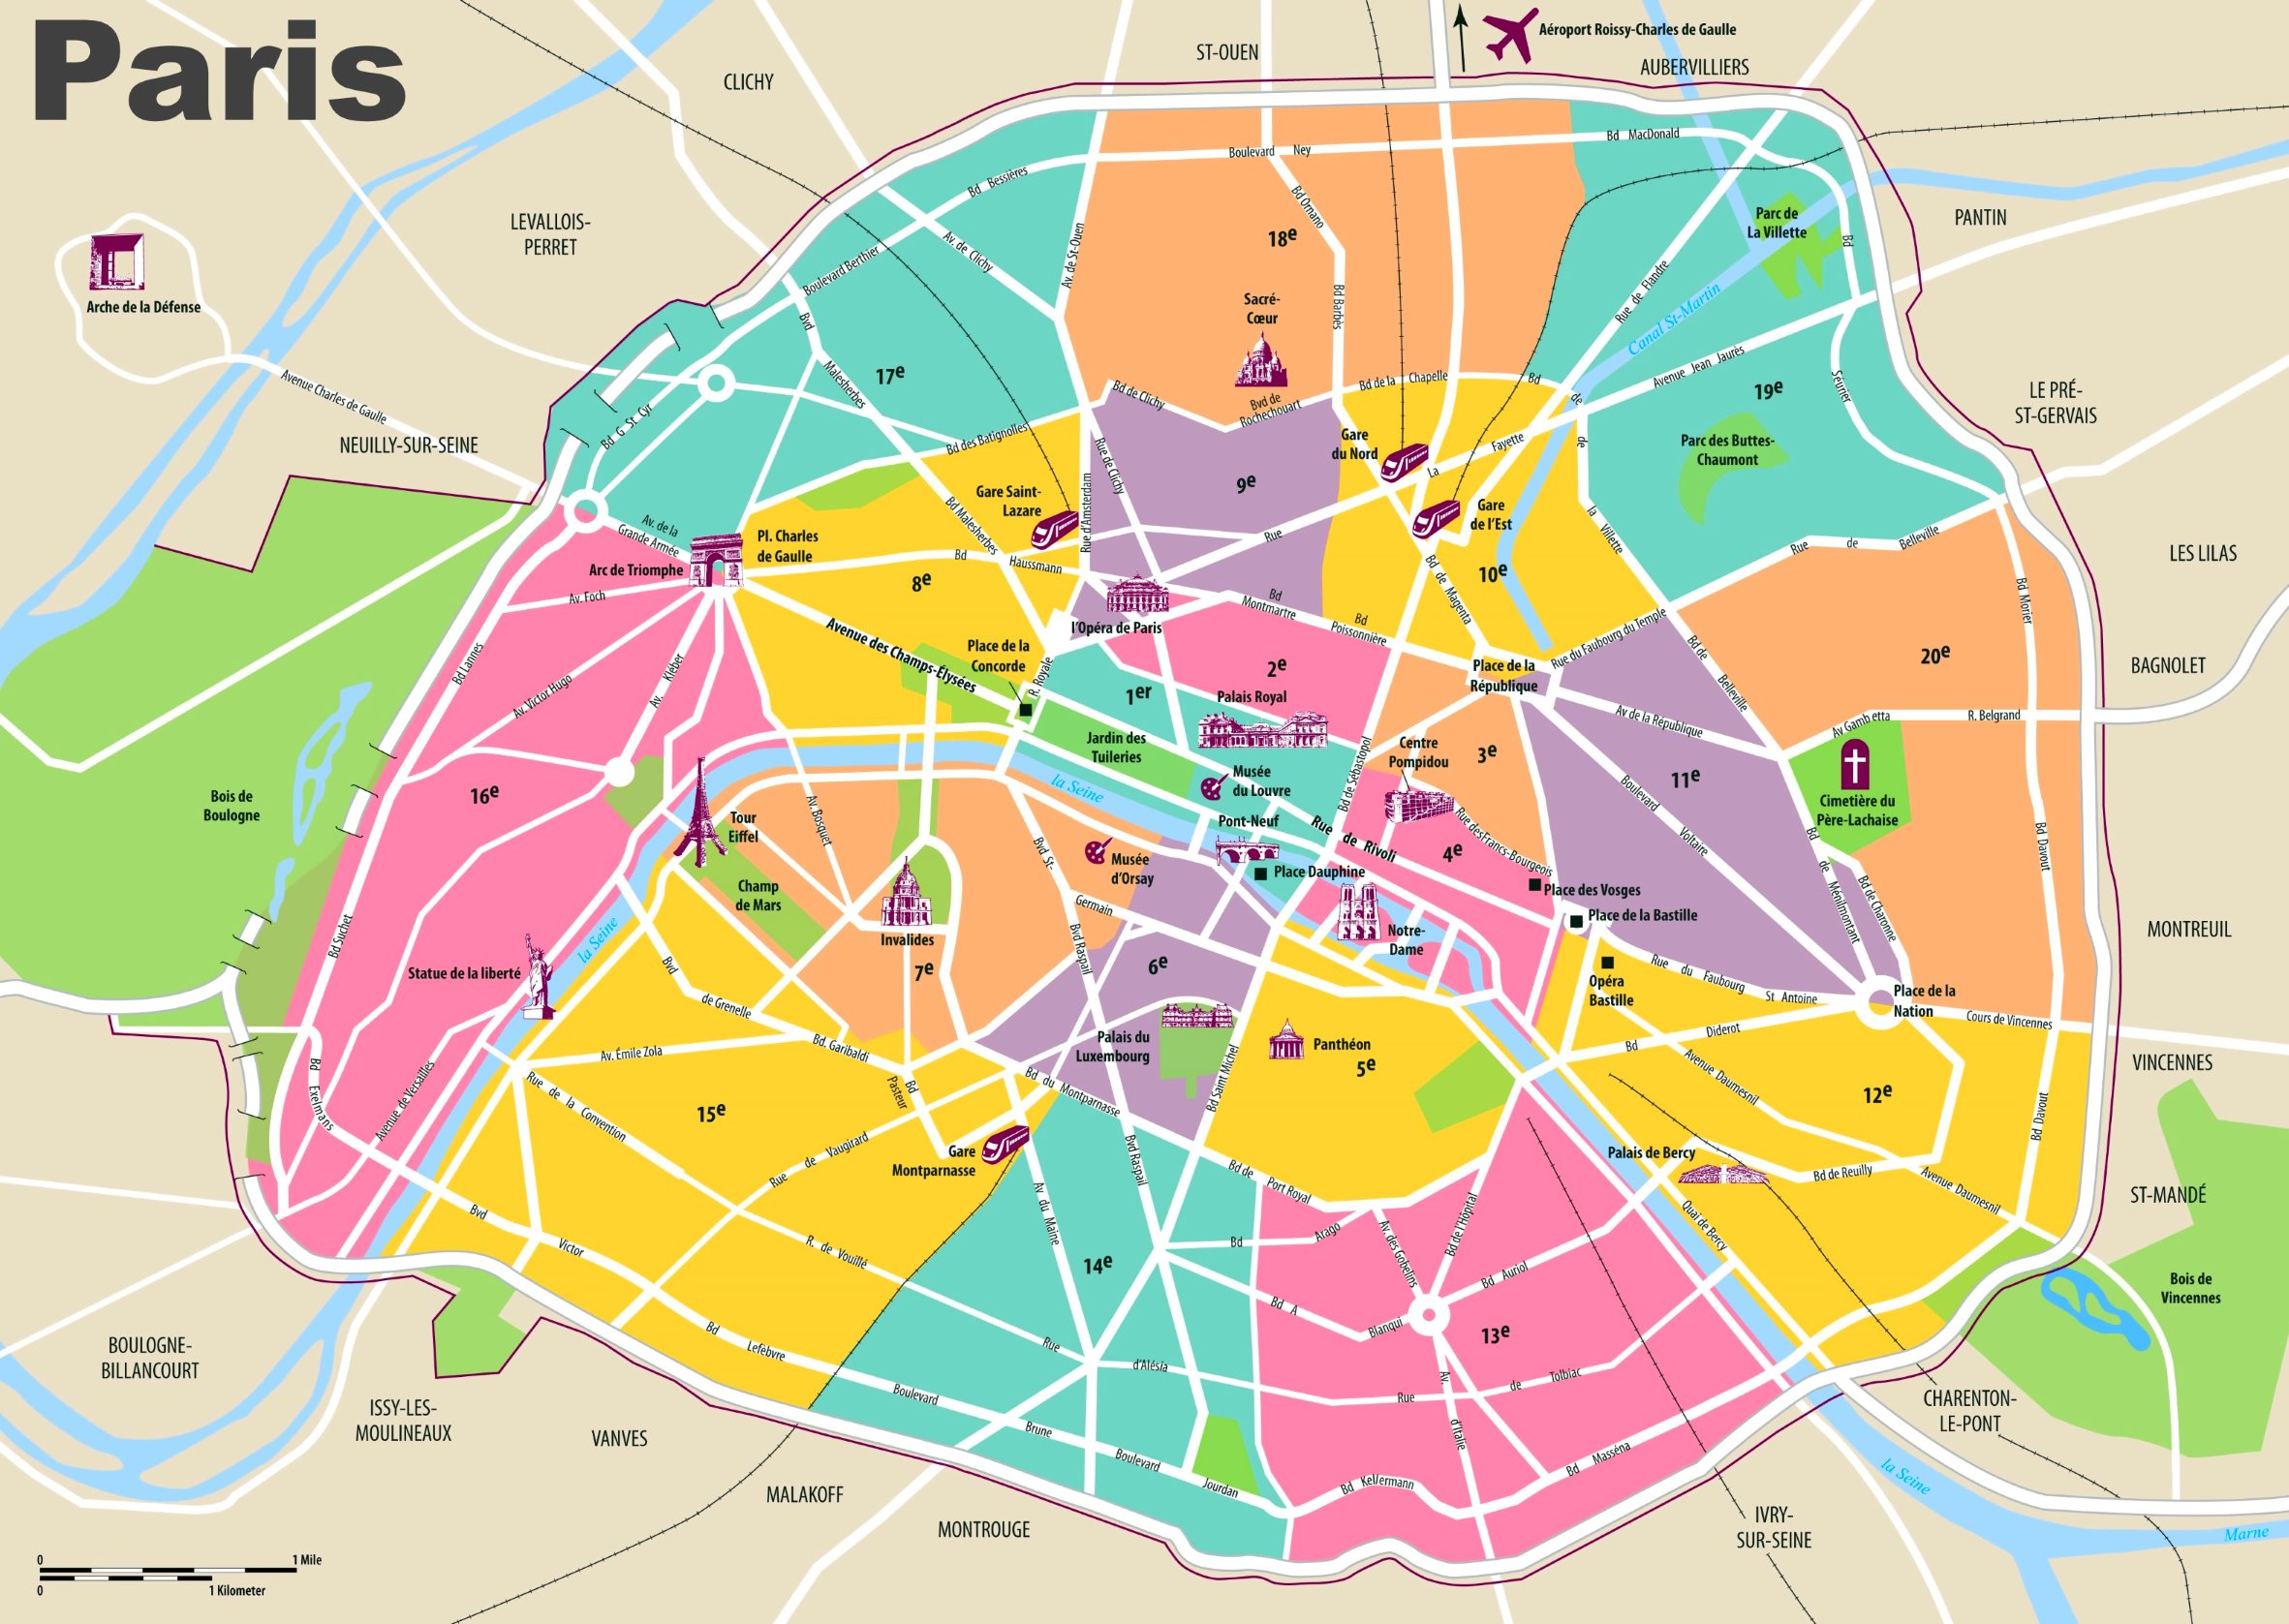 Paris Maps France – Map of Tourist Attractions in Paris